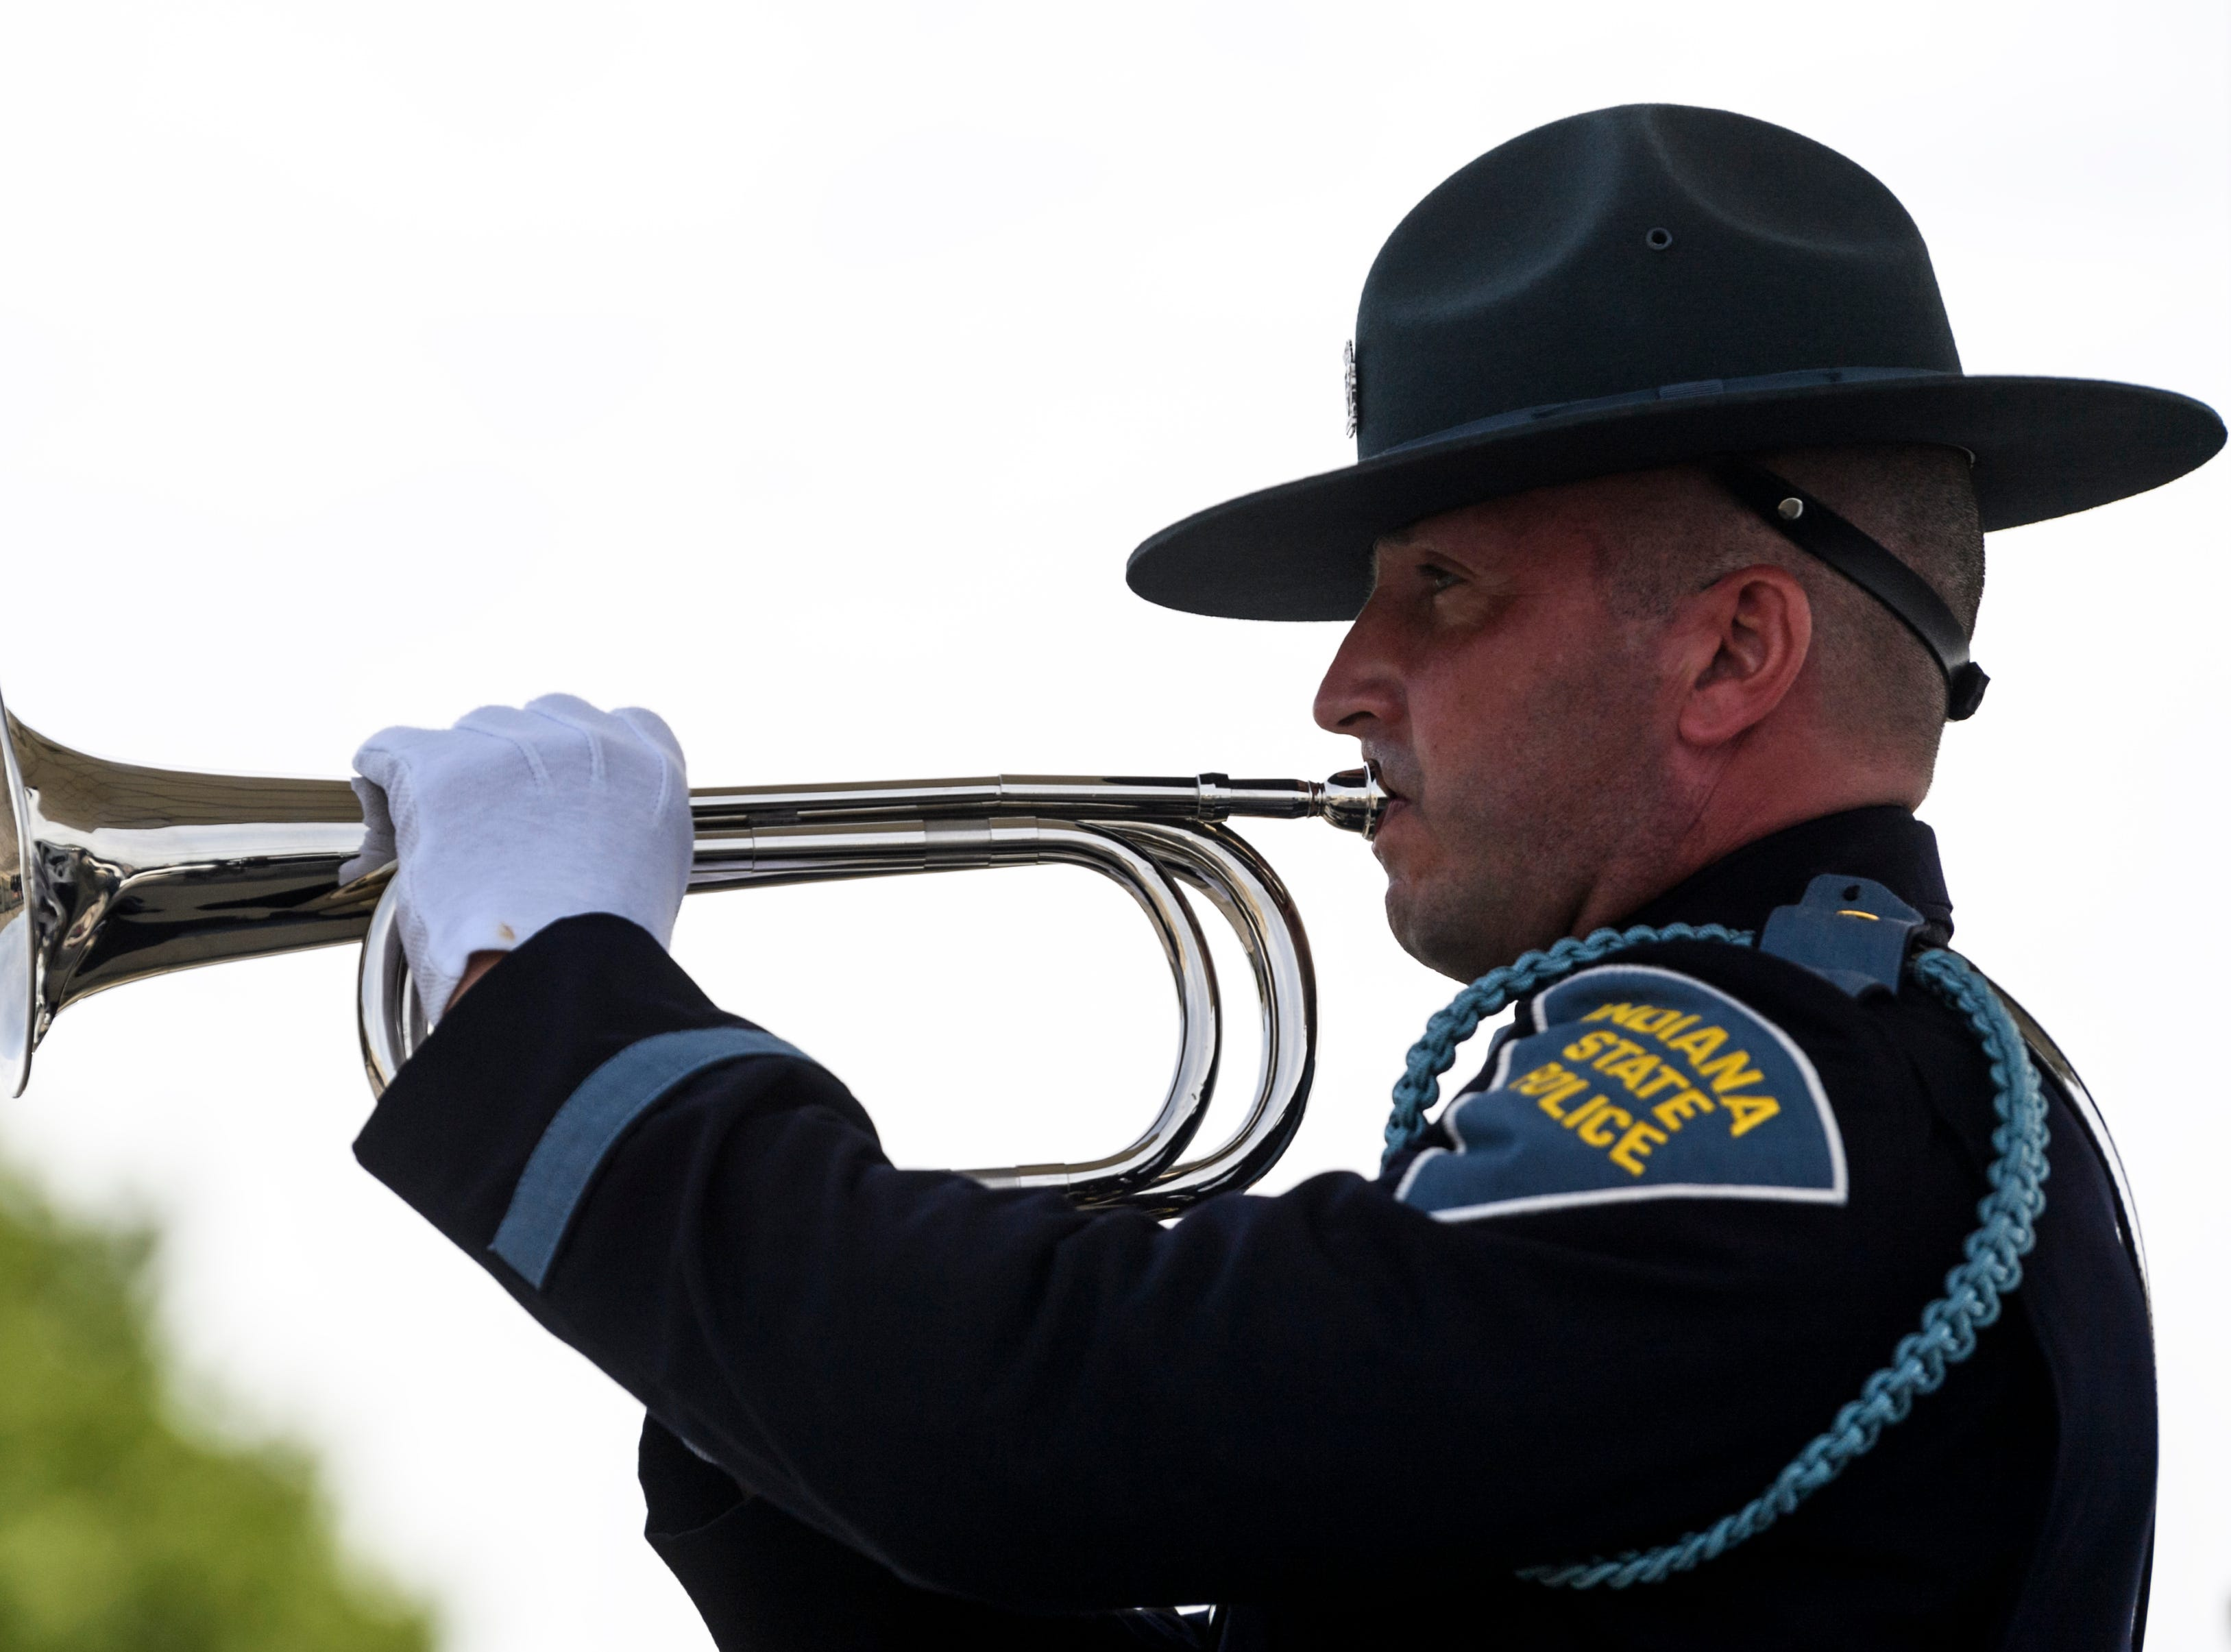 An Indiana State Police officer plays taps to honor the 46 officers who died in the line of duty over the years during the annual memorial service at the ISP Post in Evansville, Ind., Wednesday, May 8, 2019.